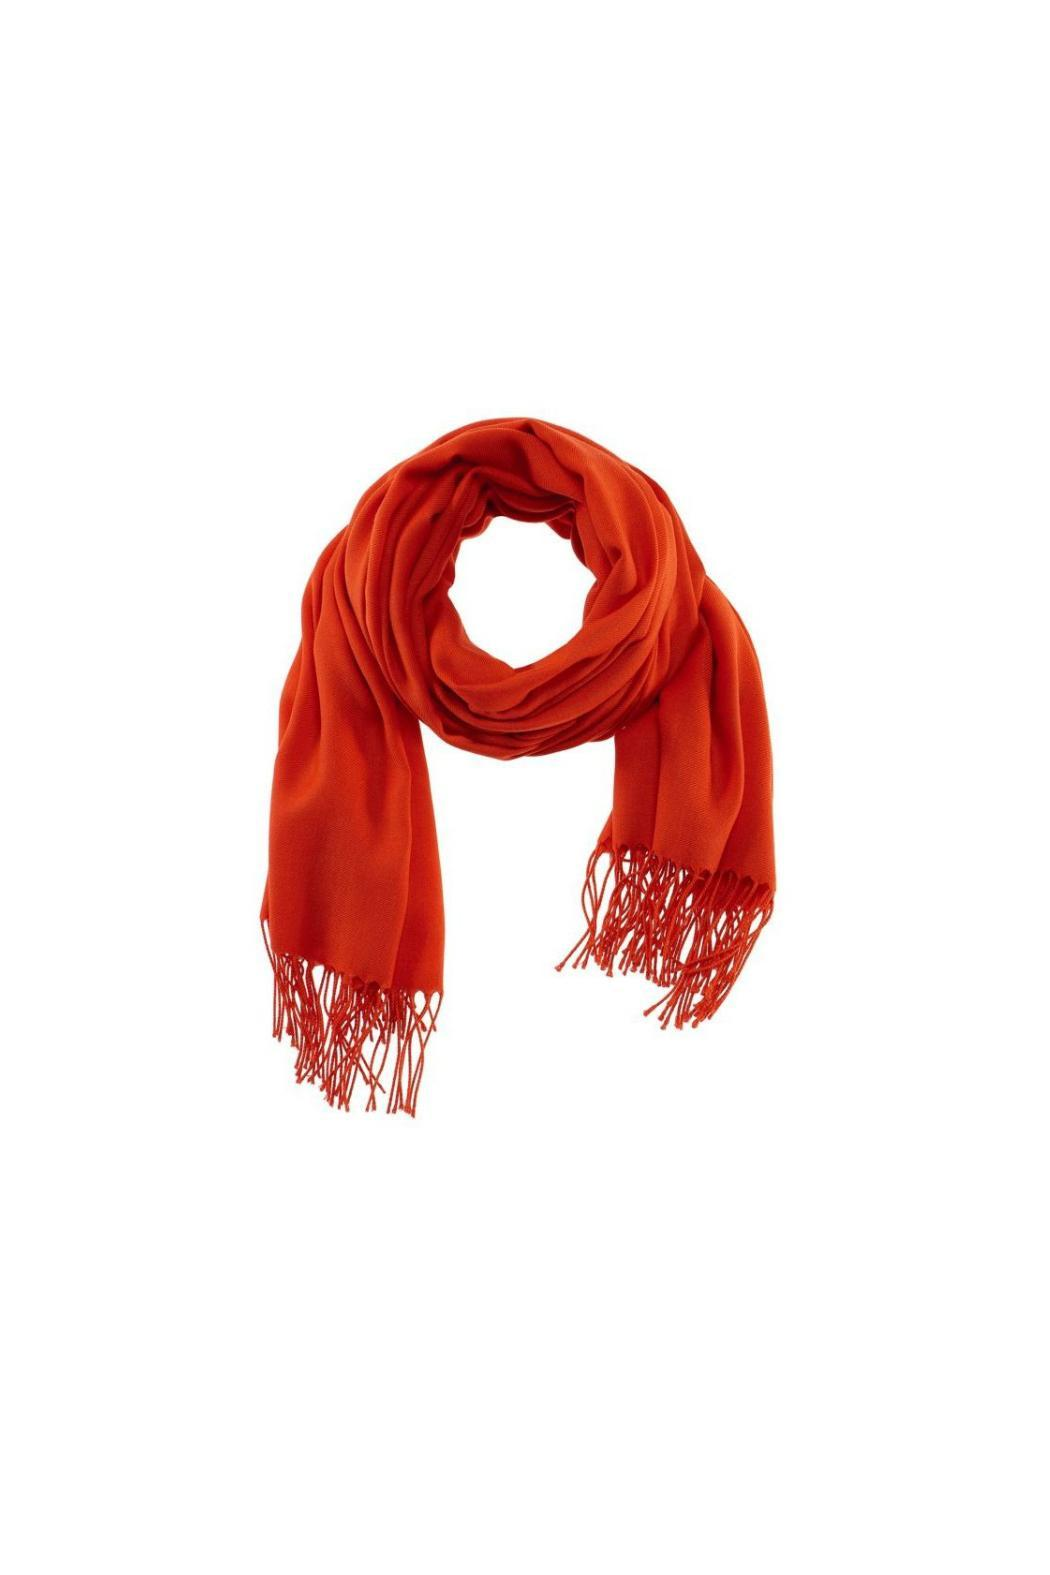 6th Borough Boutique Orange Pashmina Scarf - Front Cropped Image